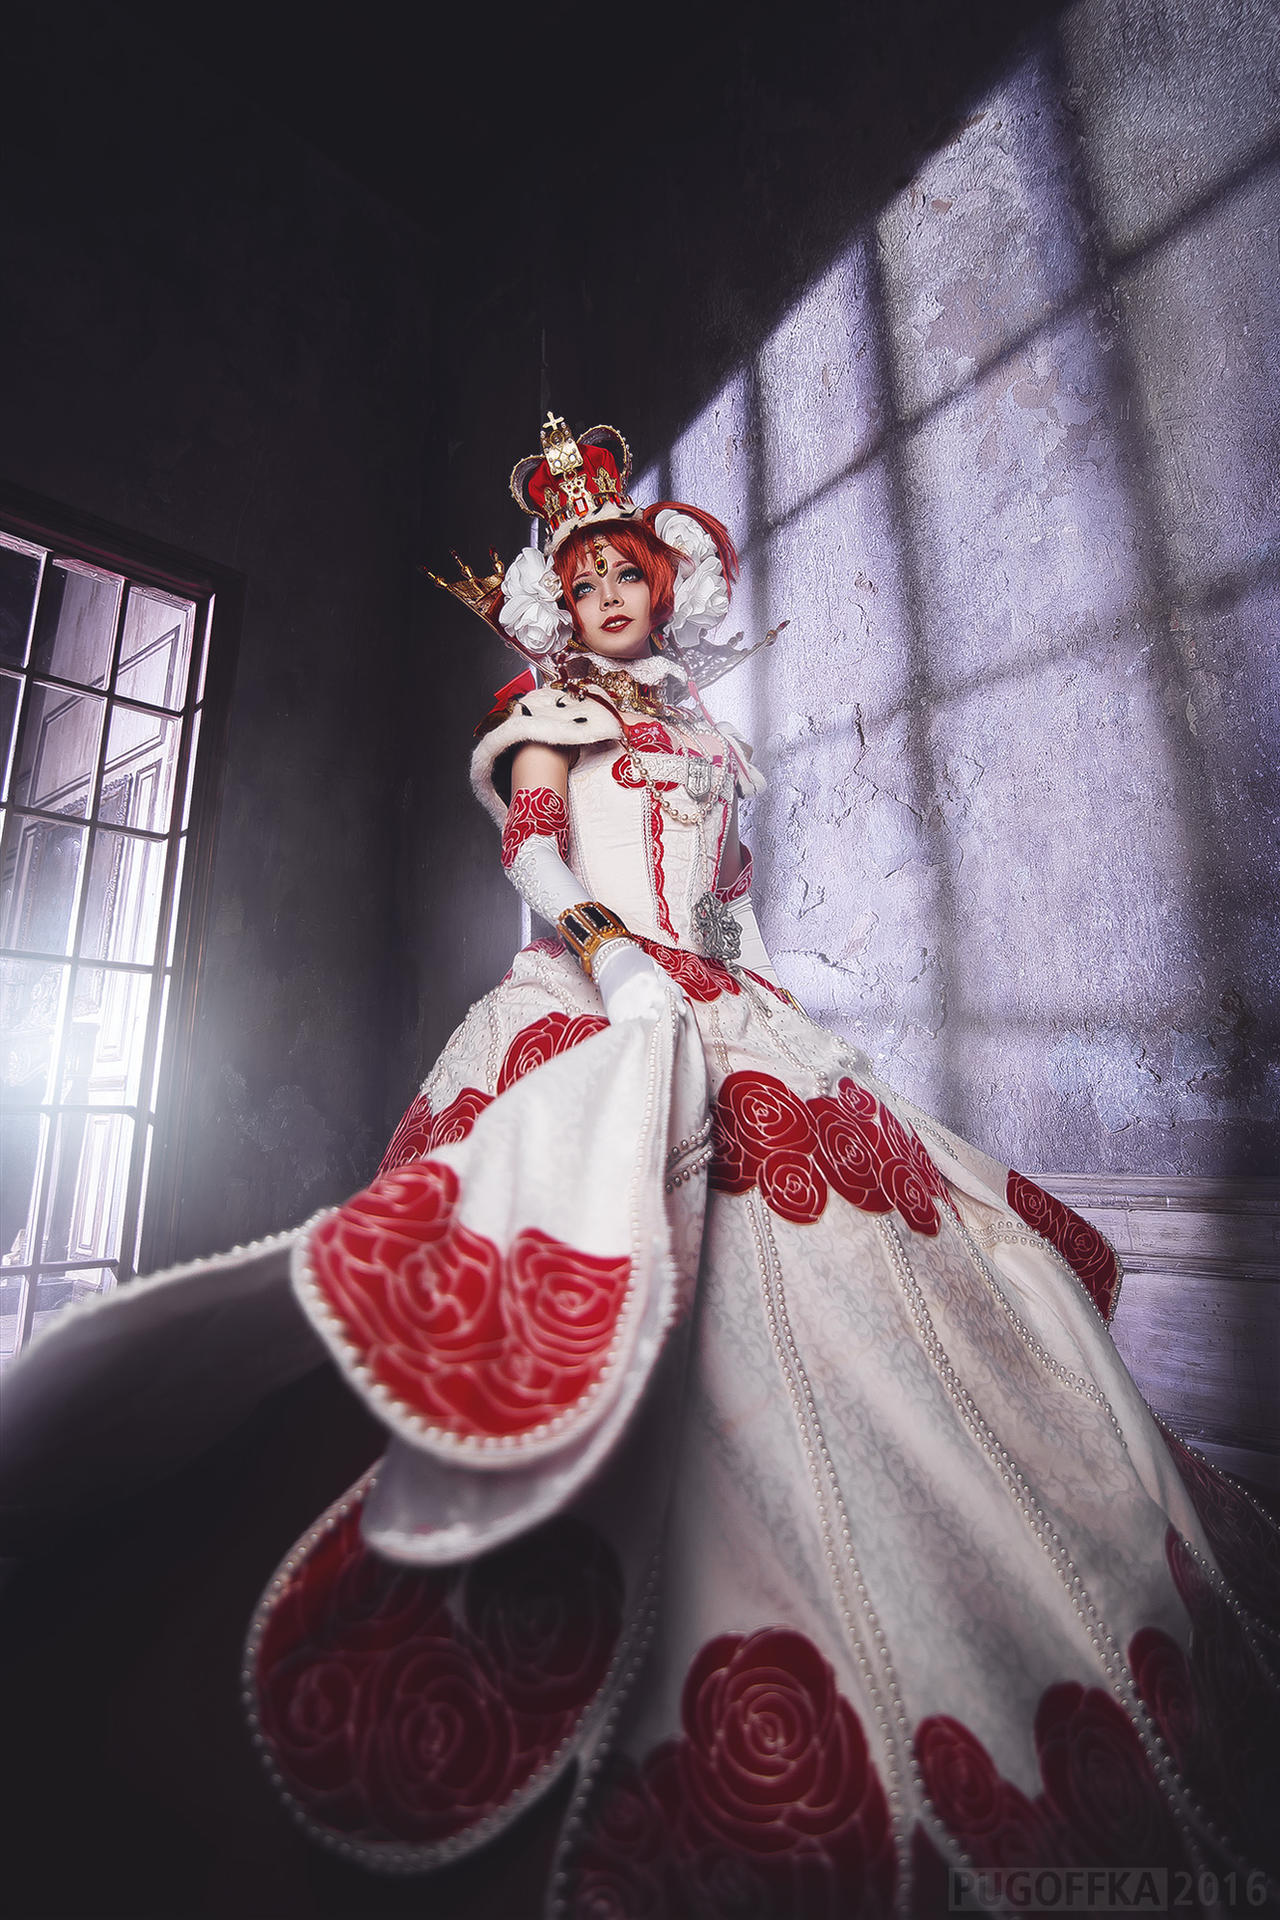 Trinity Blood - Esther Blanchett by Pugoffka-sama